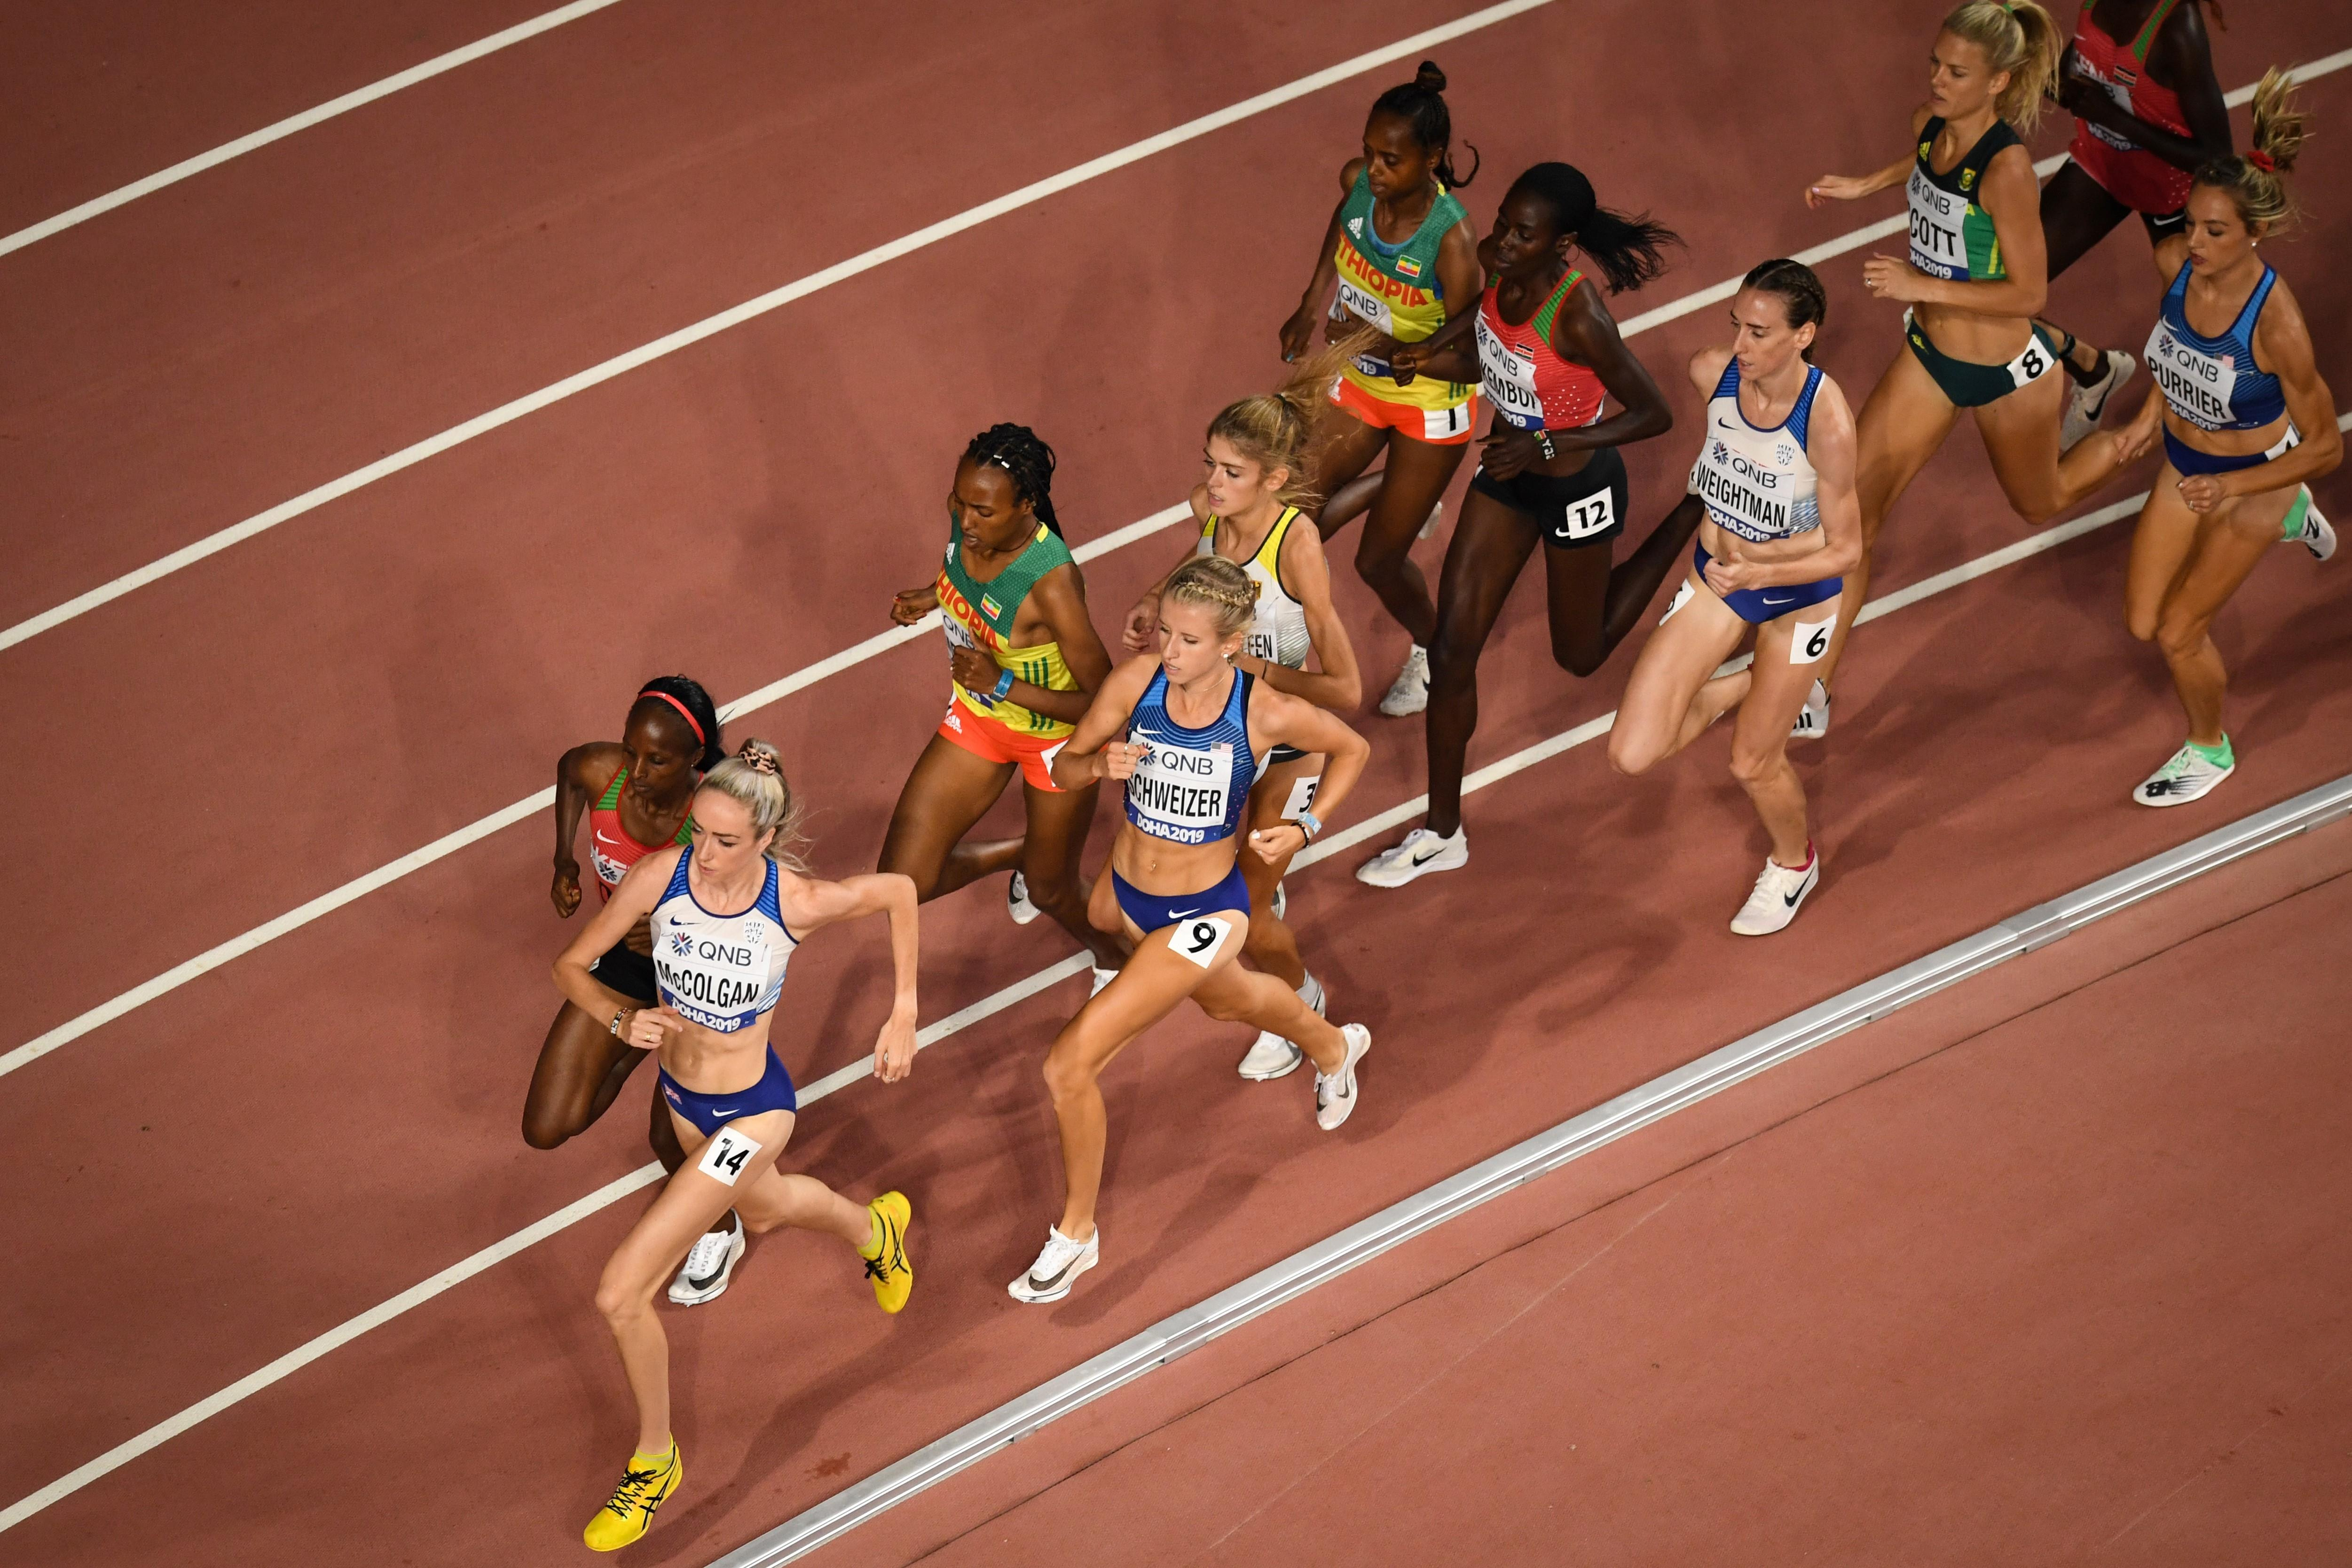 Athletes in action in the women's 5000m at the World Championships (AFP / Getty Images)